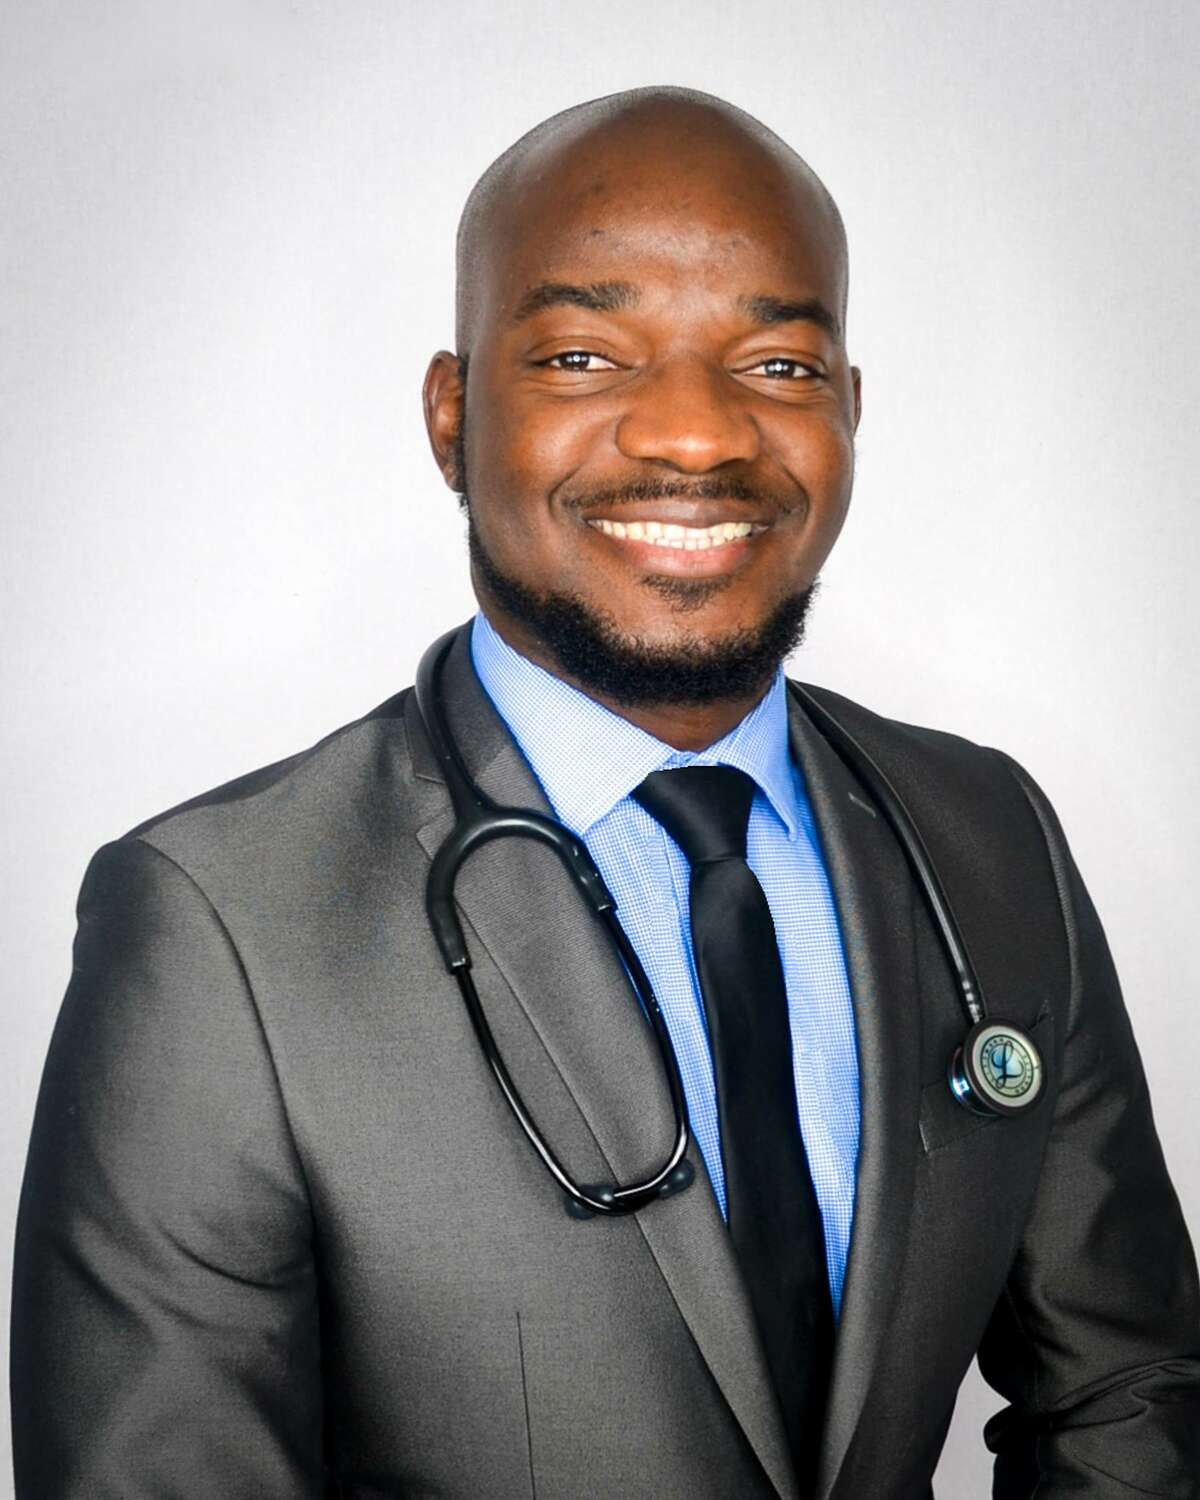 """Kwayu """"Peter"""" Abraham is dedicated to helping people. The 30-year-old East African native followed his sister to Midland and then to Midland College 10 years ago. Since that time, Abraham has successfully obtained three degrees and is now a nurse practitioner in the Emergency Room at Midland Memorial Hospital."""